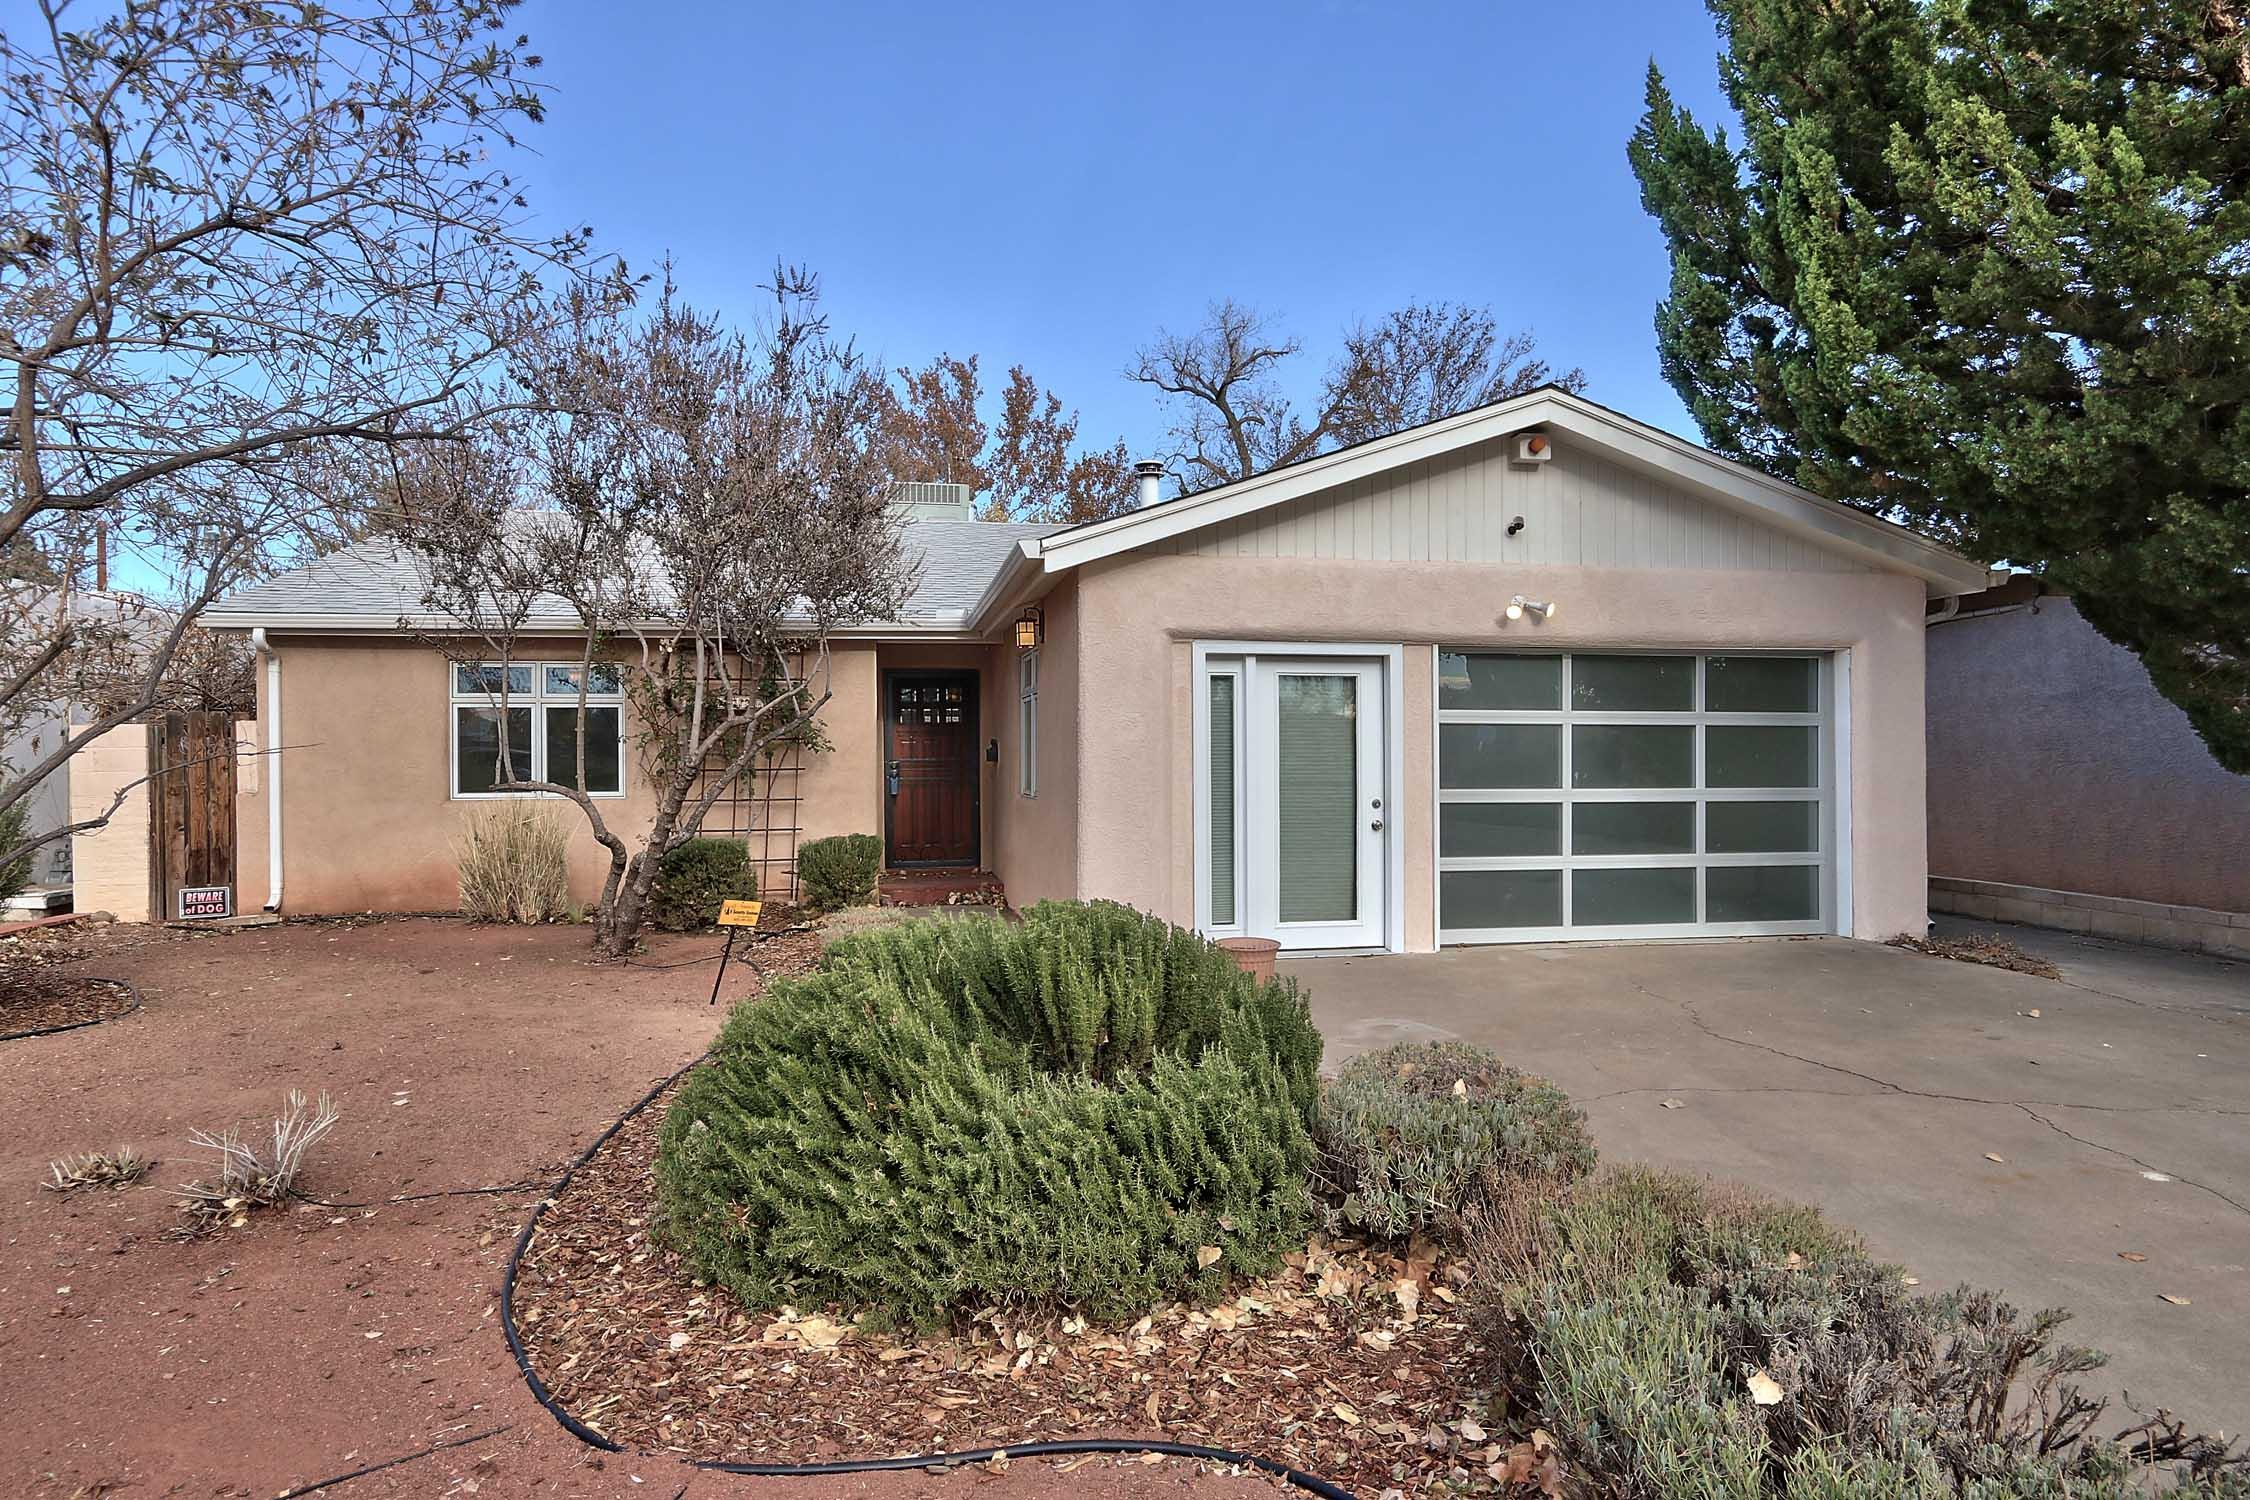 Charming Downtown Home, freshly painted. Steps from the Albuquerque Country Club.   Two generously sized bedrooms, 2 baths and lots of flex space in the finished garage.  Beautiful Kiva fireplace in the living room, SS appliances, Lots of light through out.  Low water low maintenance landscaping. Appliances convey'' As Is'' no warranty conveyed or implied.  Great opportunity to live in the Country Club. Home is move in ready. Roof is a few months old, Thermal pane windows, stucco has insulation. Come see it soon. Floor Plan available. Price correction reflects actual sq. ft.